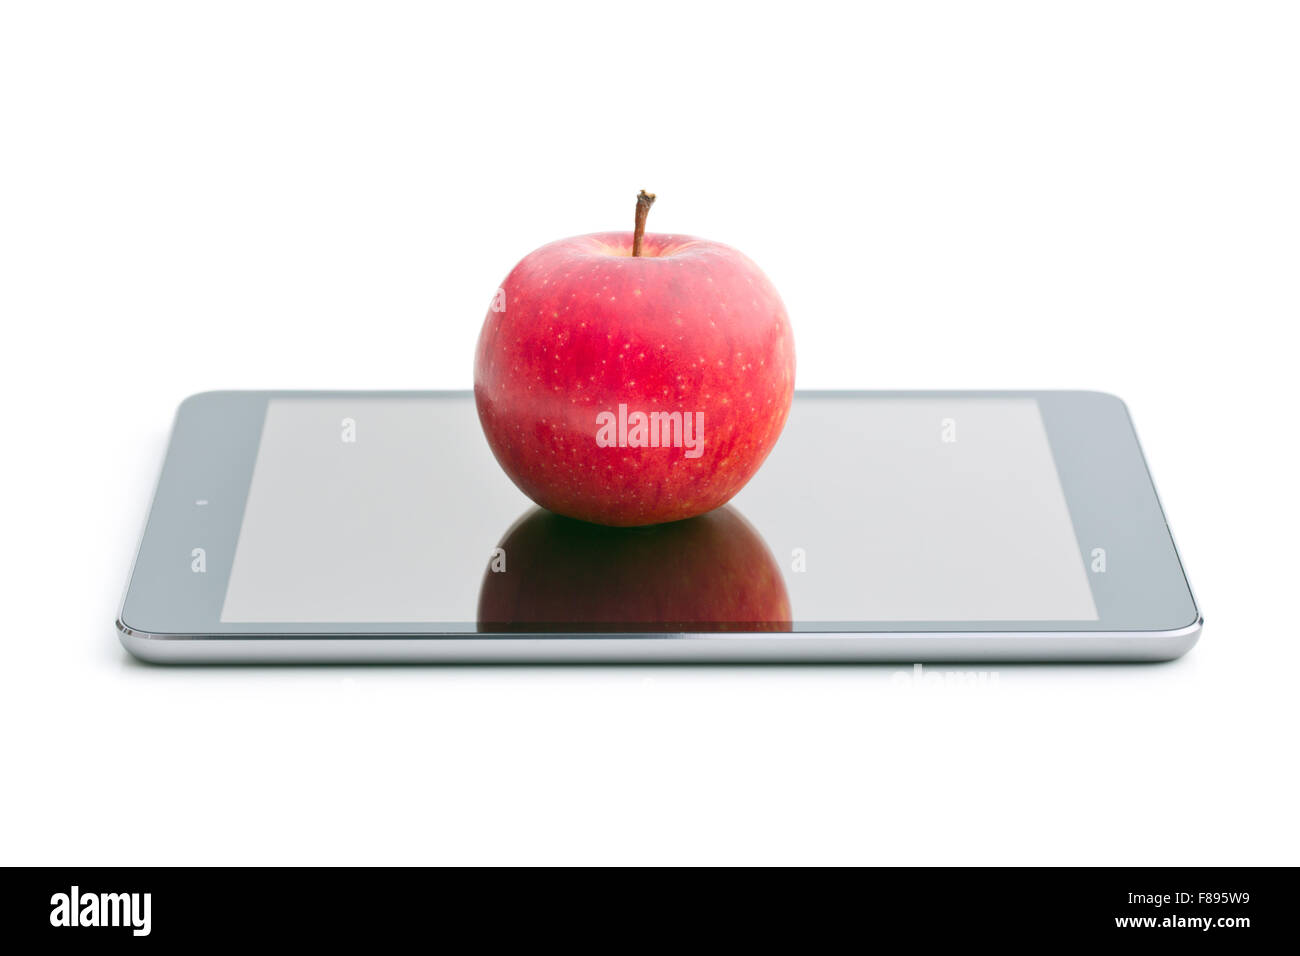 red apple and computer tablet on white background - Stock Image